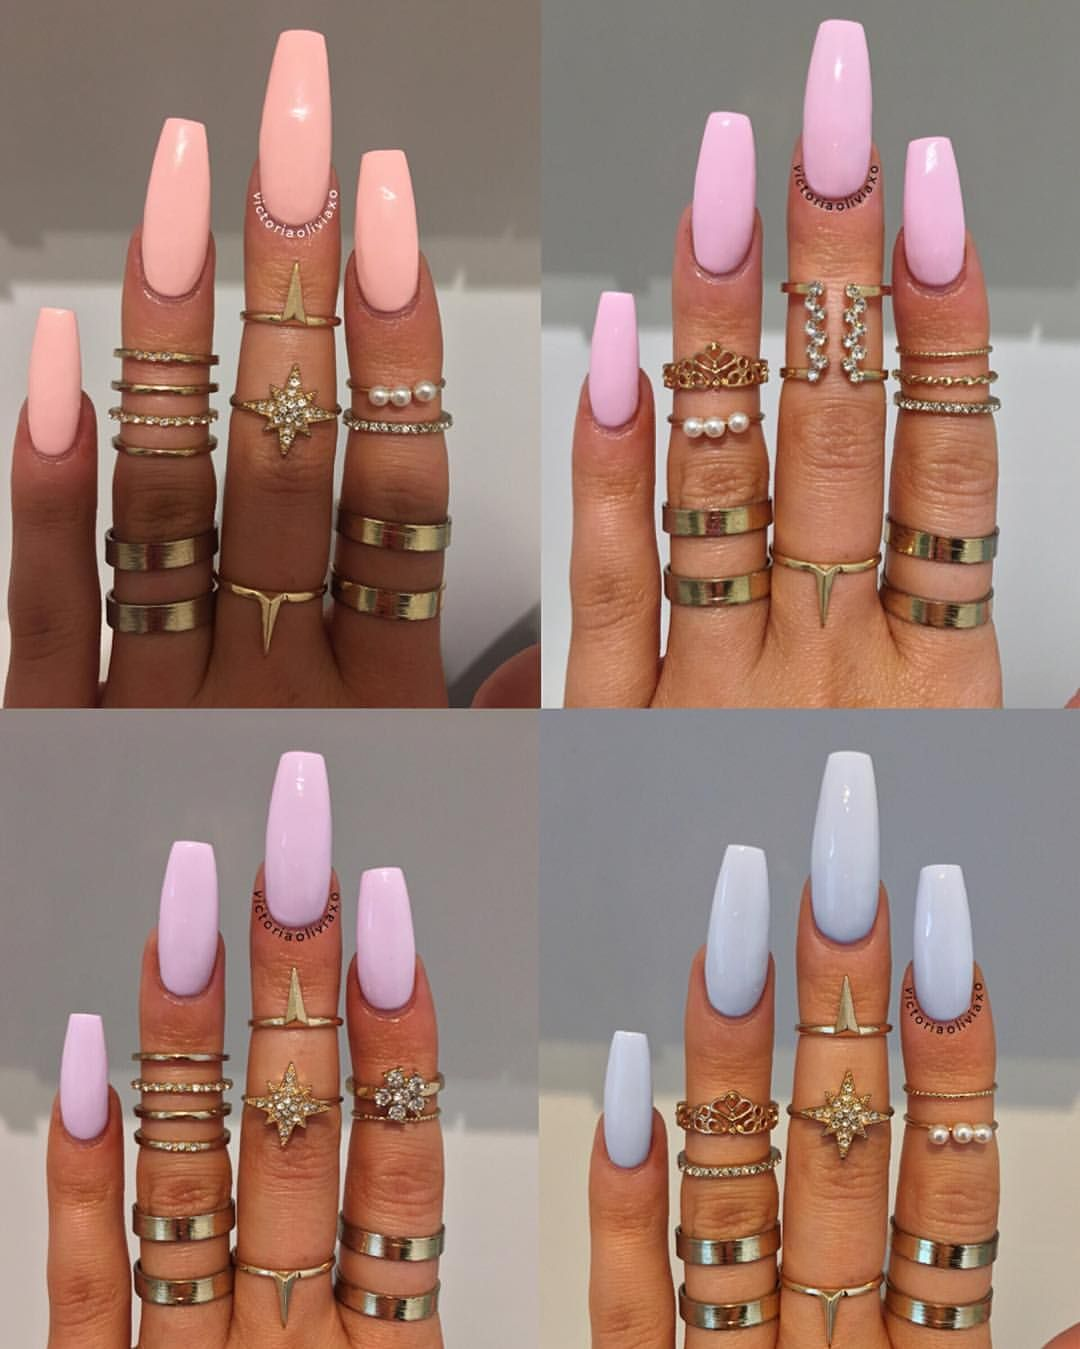 Pin van India Suy op Nails | Pinterest - Nagel ontwerp, Nagel en ...